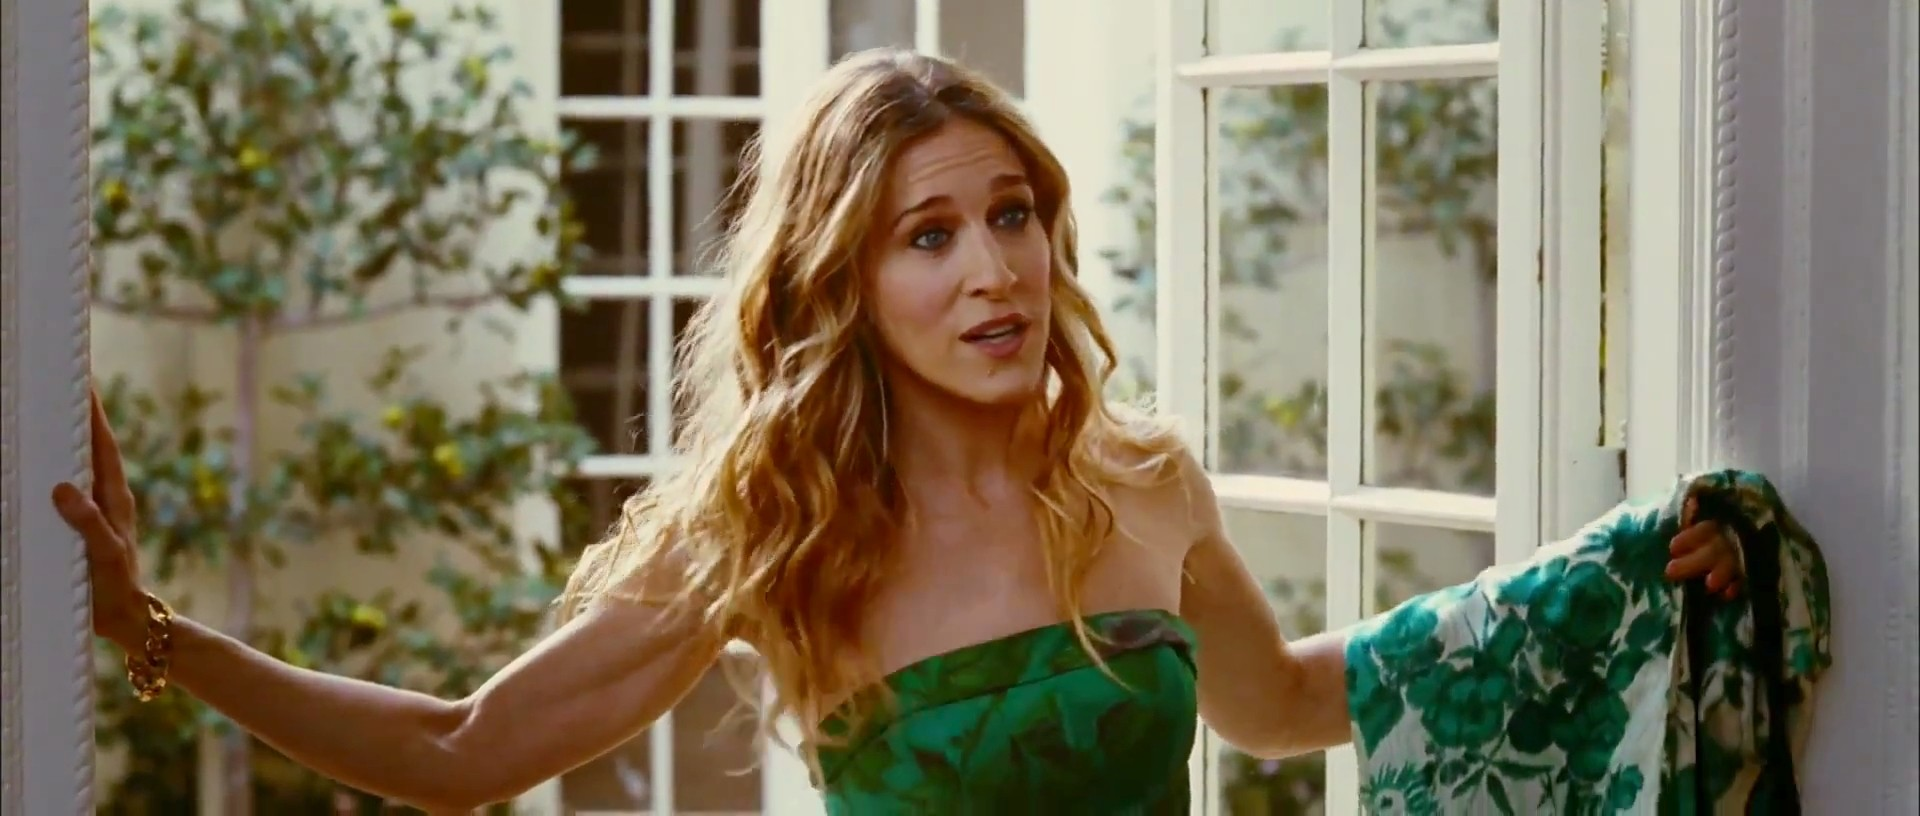 sarah-jessica-parker-as-carrie-bradshaw-in.jpg